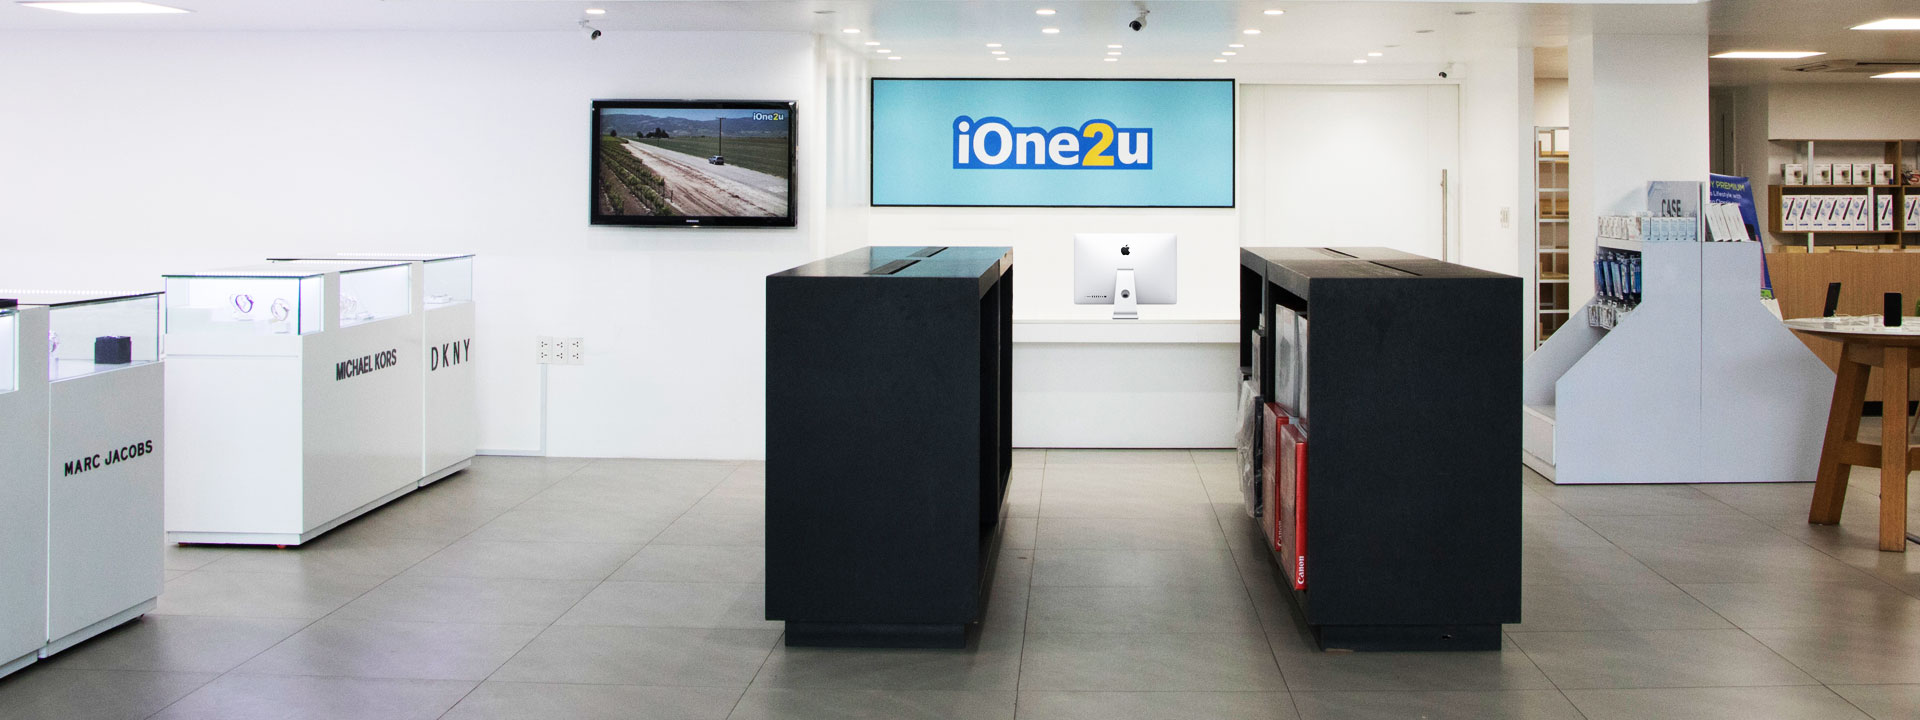 iOne2u Store Photo Gallery